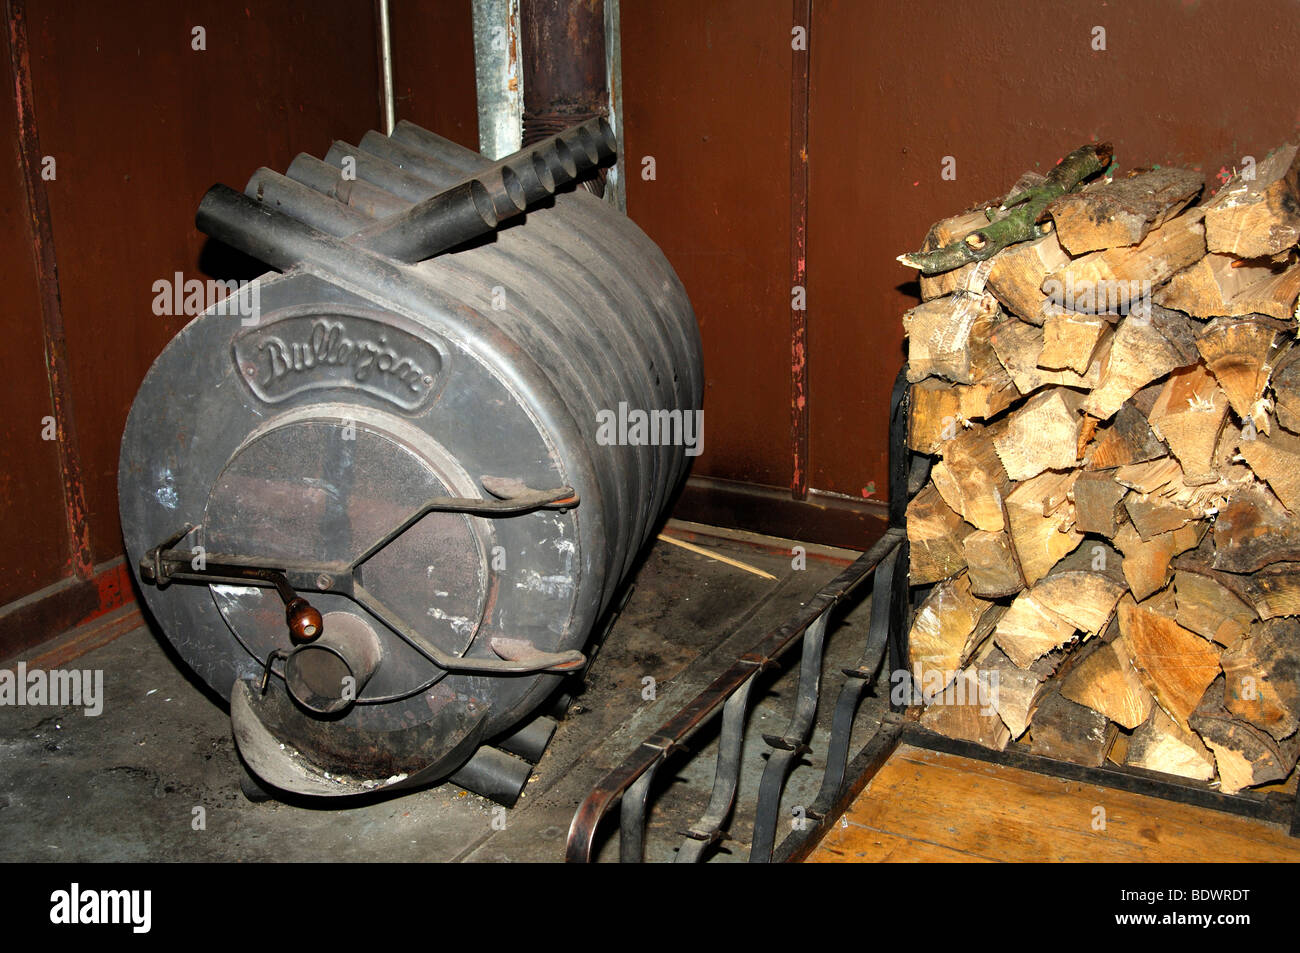 hot air furnace bullerjan and a heap of firewood logs stock photo royalty free image 25768116. Black Bedroom Furniture Sets. Home Design Ideas